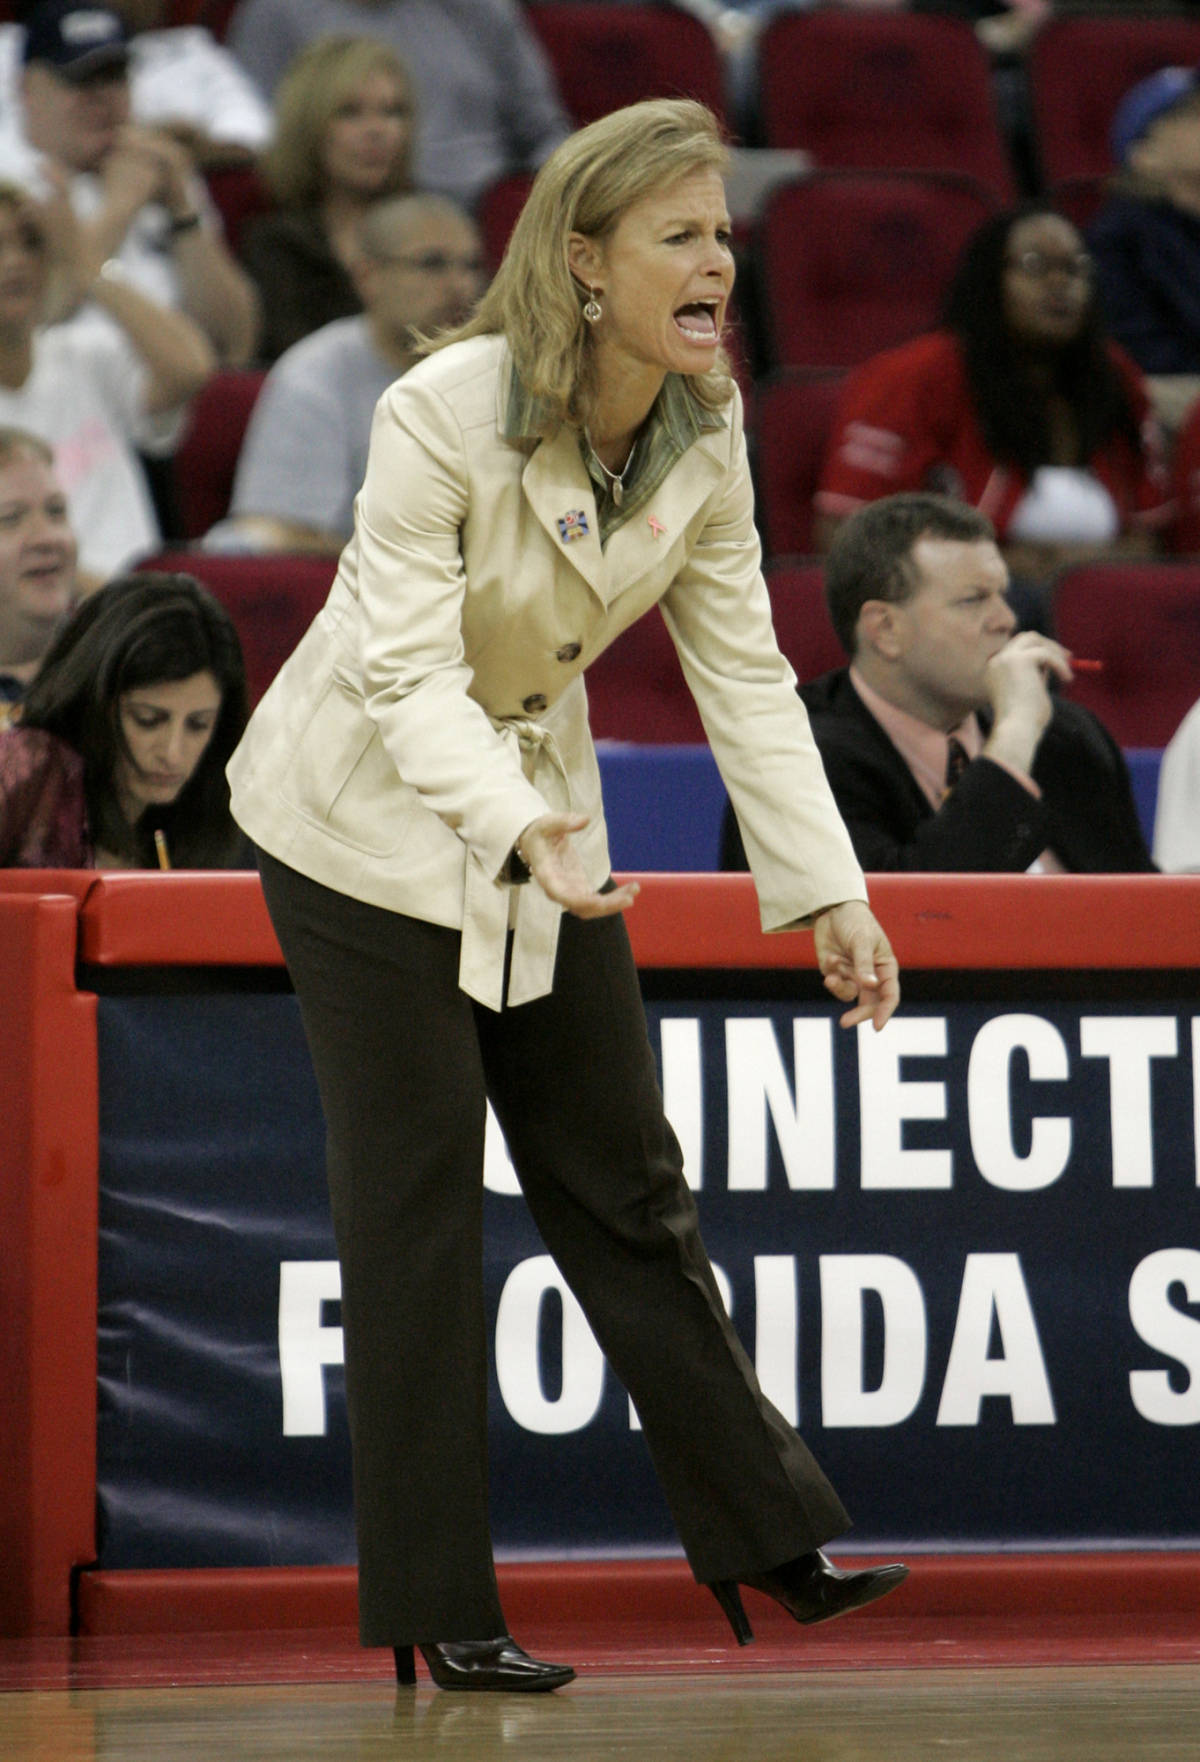 Florida State coach Sue Semrau yells out instructions to her team during the first half against Louisiana State in an NCAA women's basketball tournament regional semifinal in Fresno, Calif., Saturday, March 24, 2007. (AP Photo/Rich Pedroncelli)